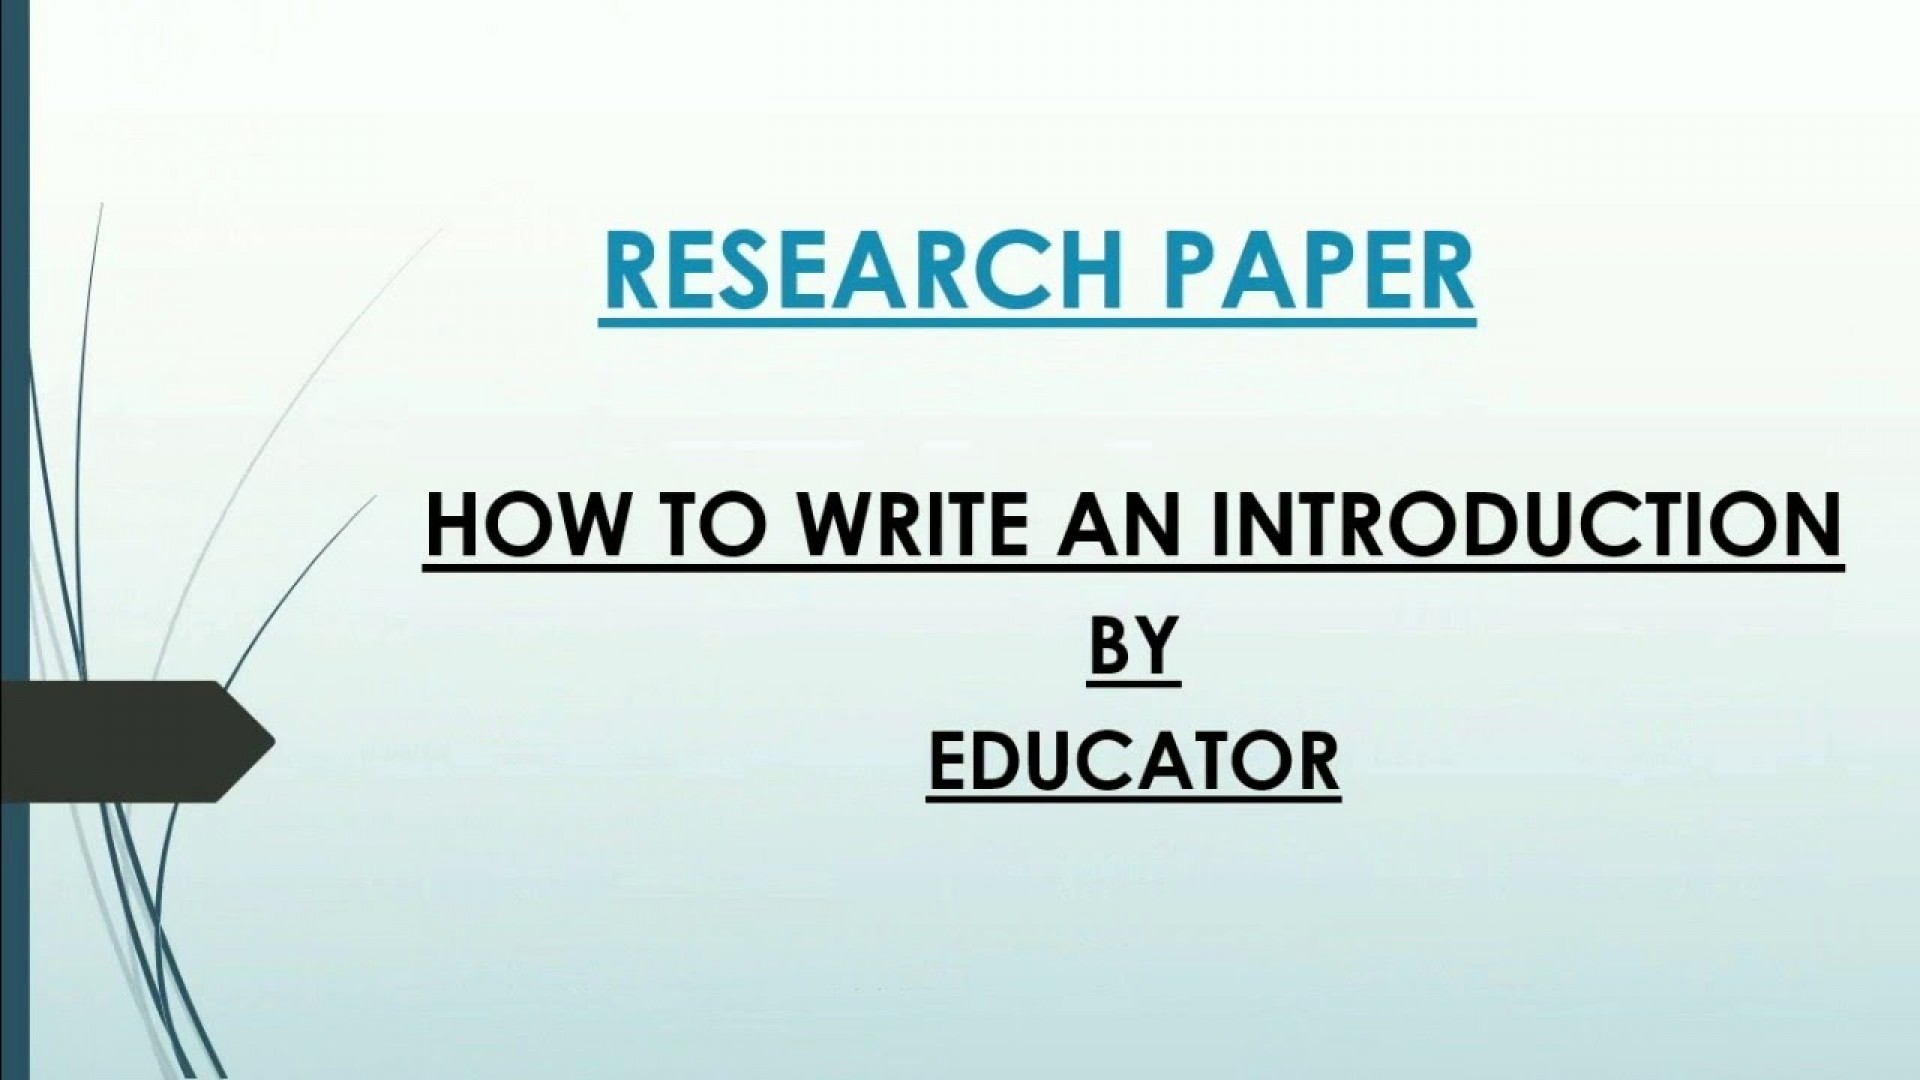 005 Research Paper Maxresdefault Best Way To Start Incredible A Introduction How Write Apa Paragraph 1920